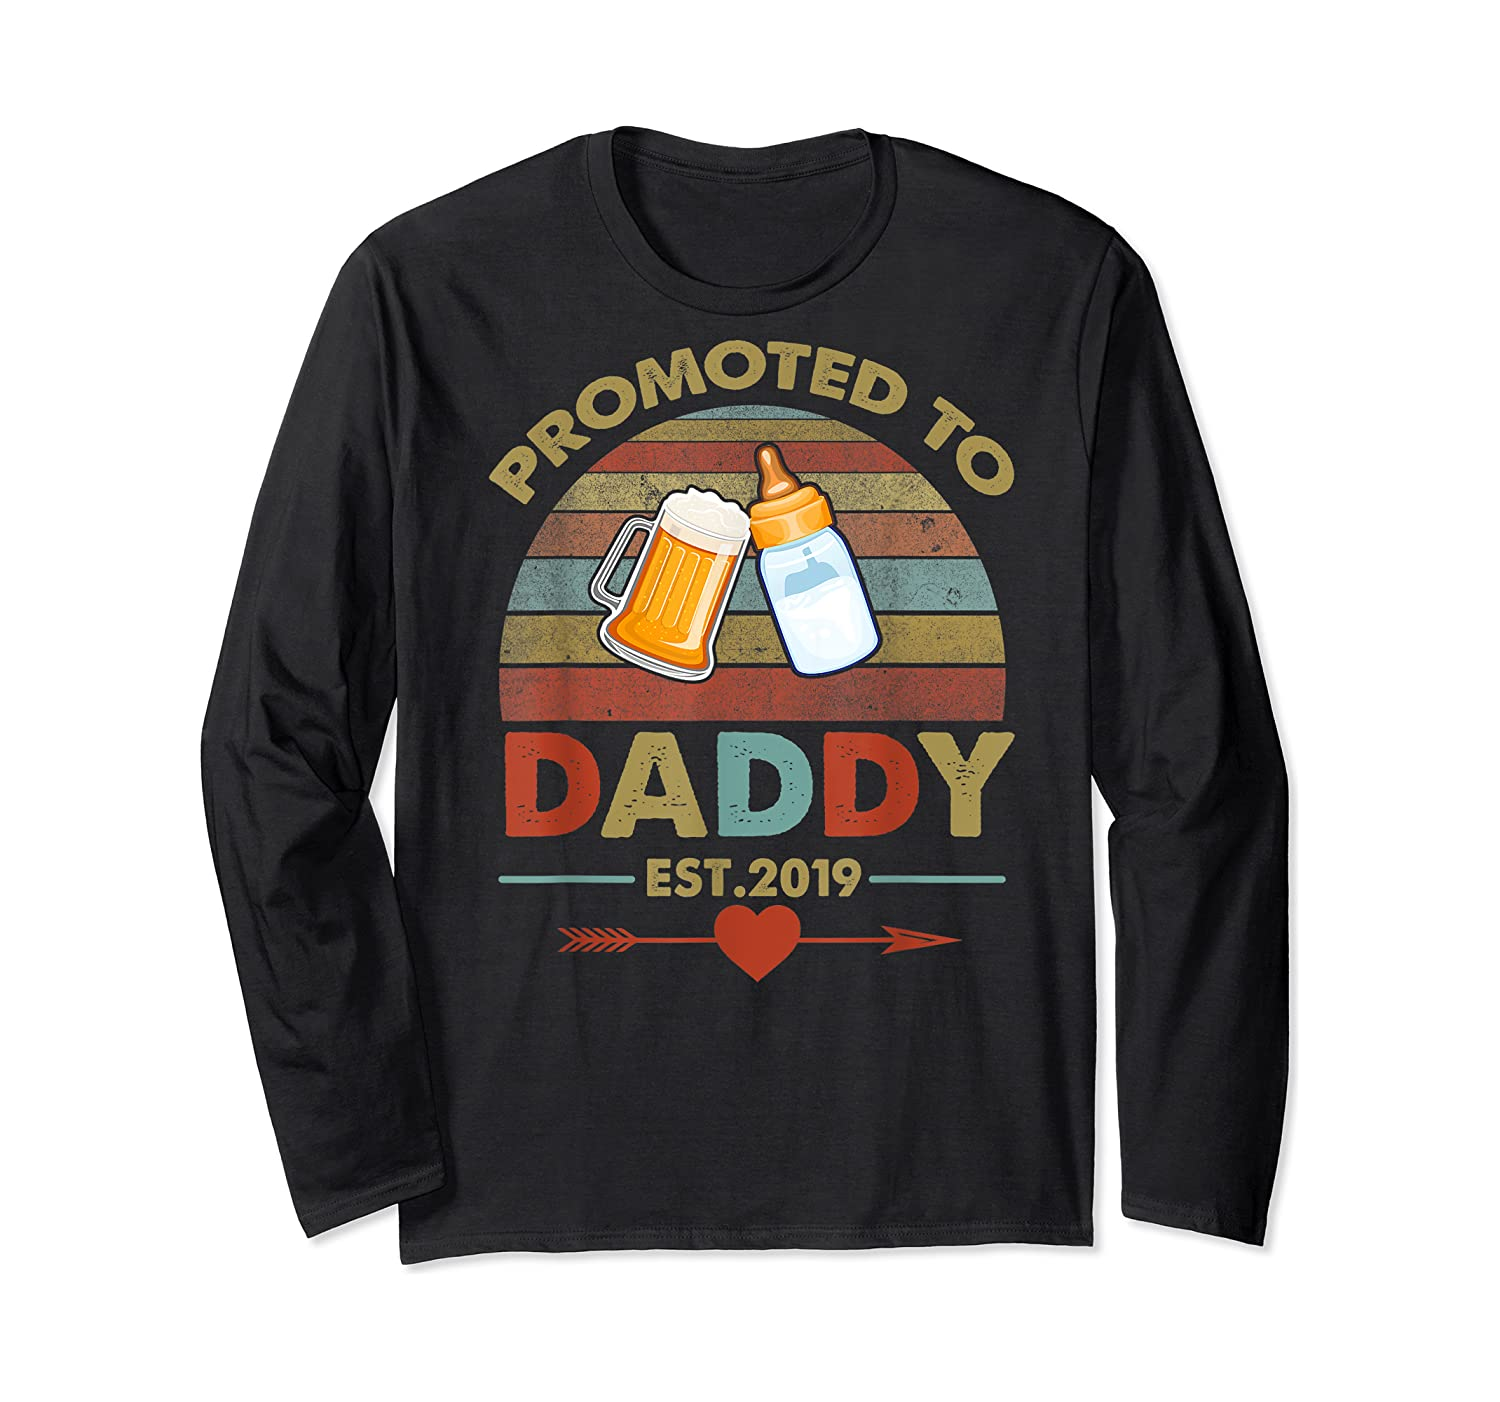 Promoted To Daddy Est 2019 Vintage Arrow T-shirt Long Sleeve T-shirt